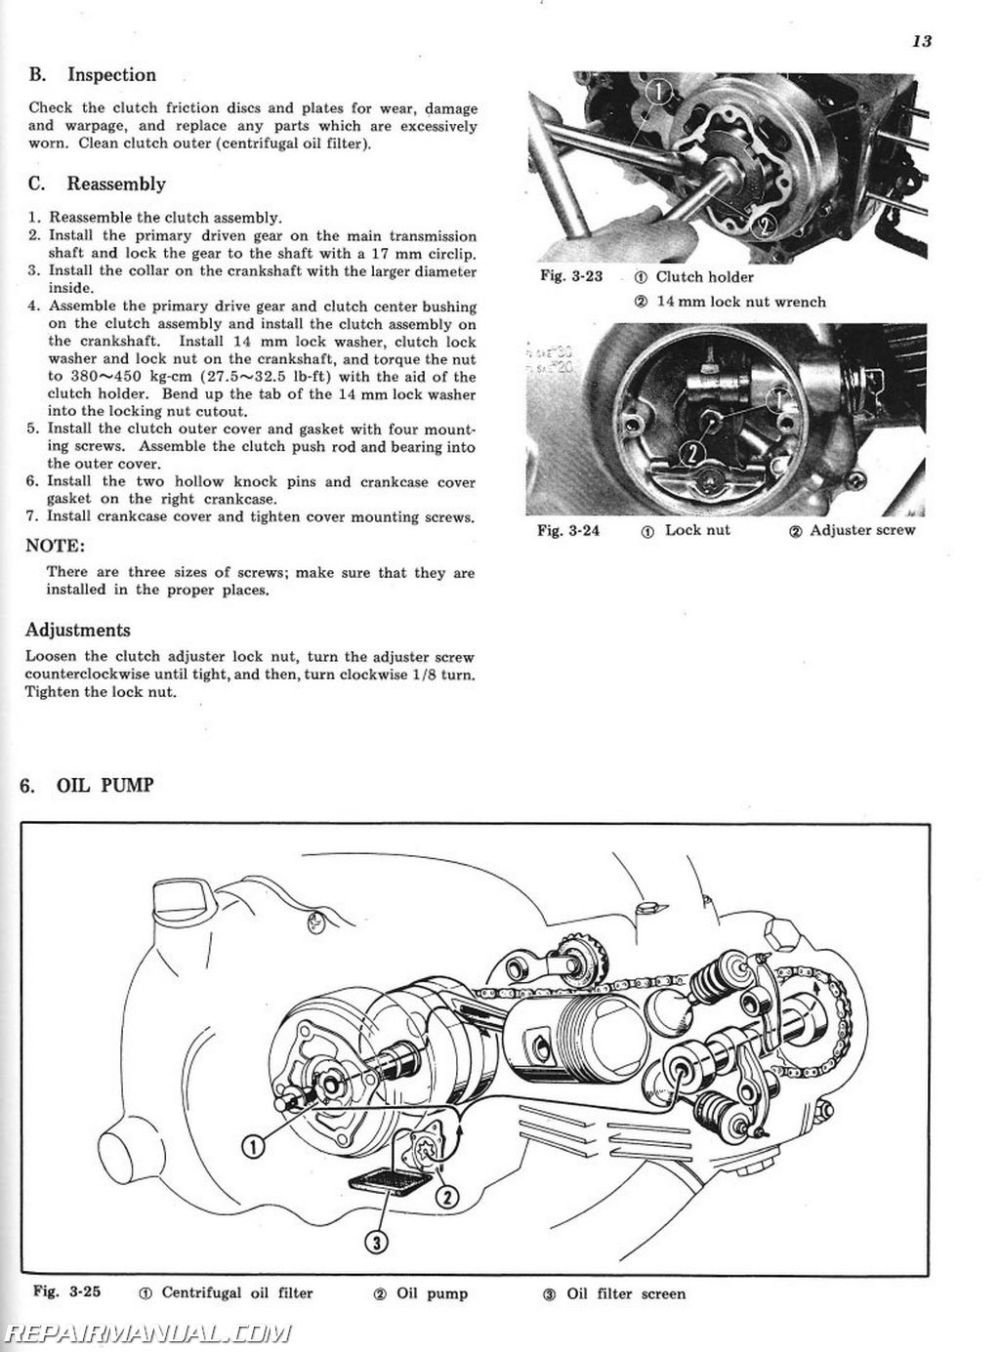 medium resolution of wiring diagrams source 1971 1976 honda sl70 xl70 motorcycle service manual rh